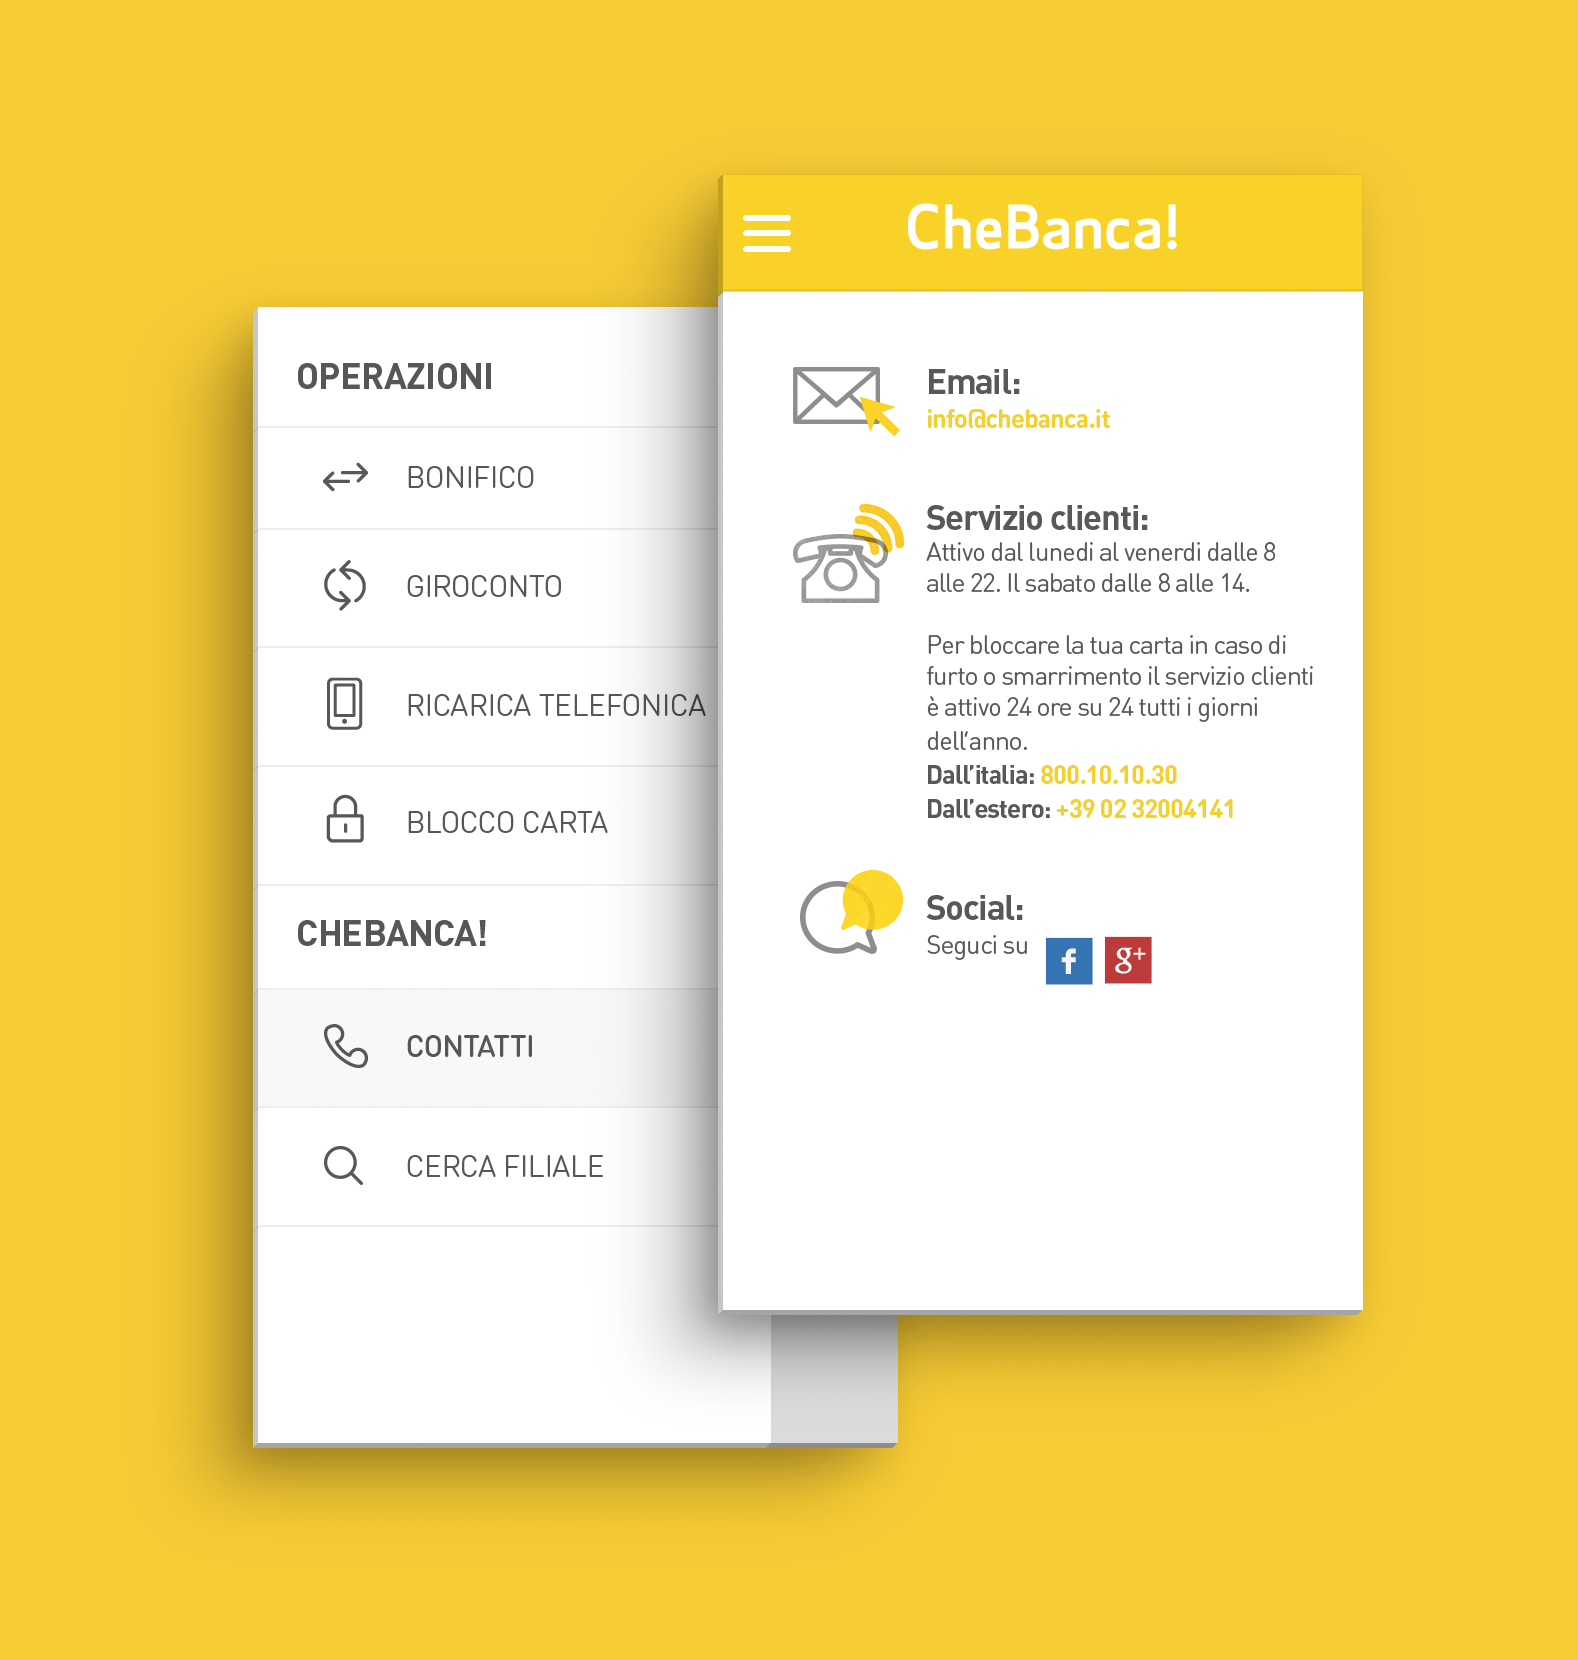 chebanca_menu_contact_screen